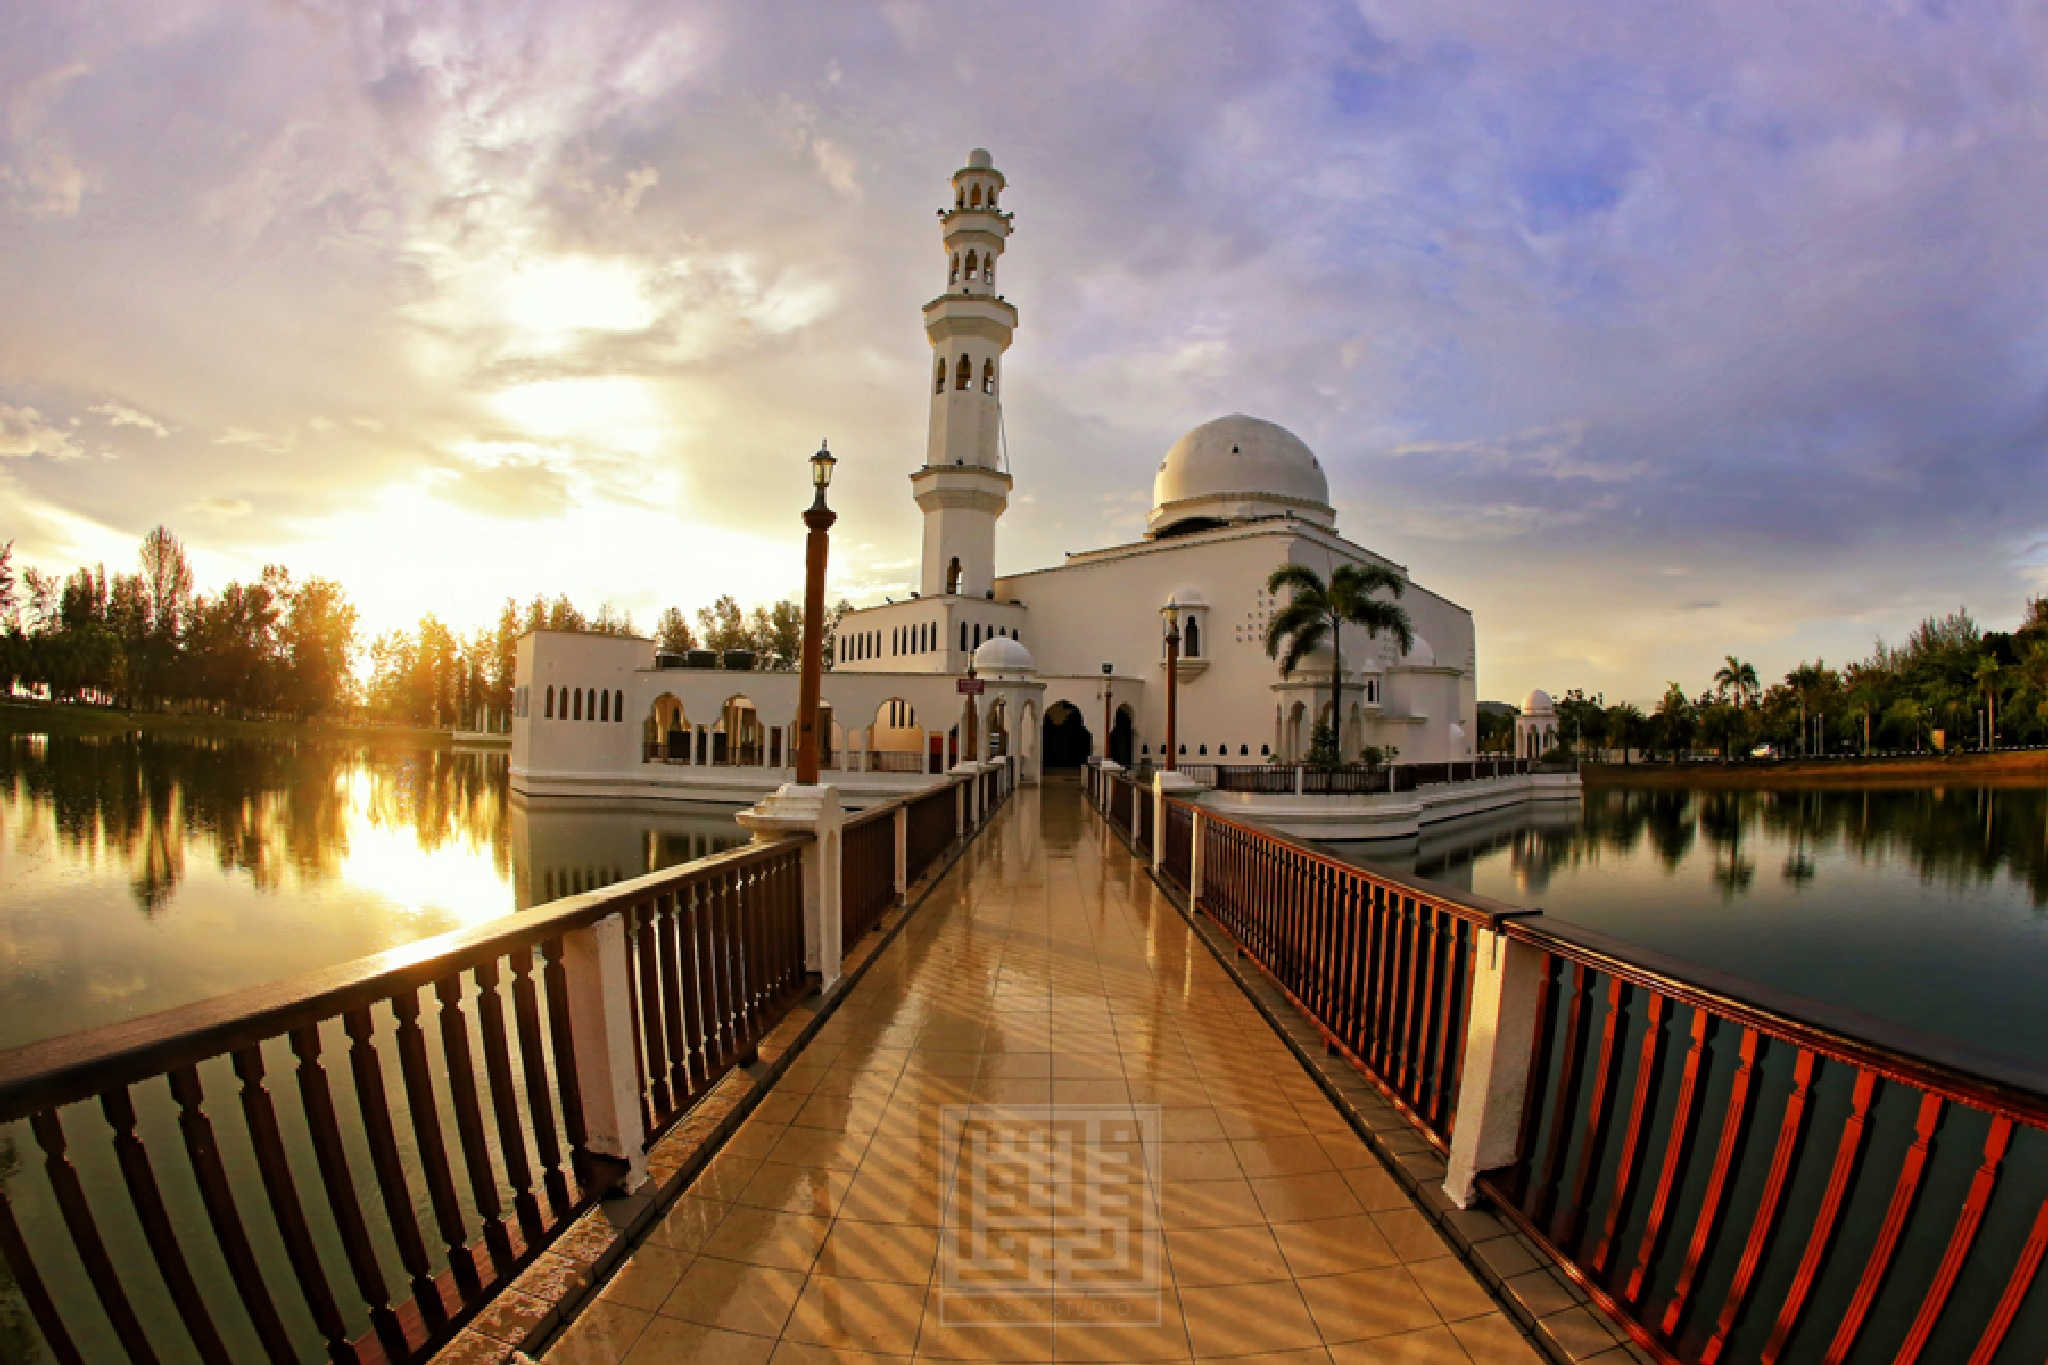 Floating Mosque by wmf2099